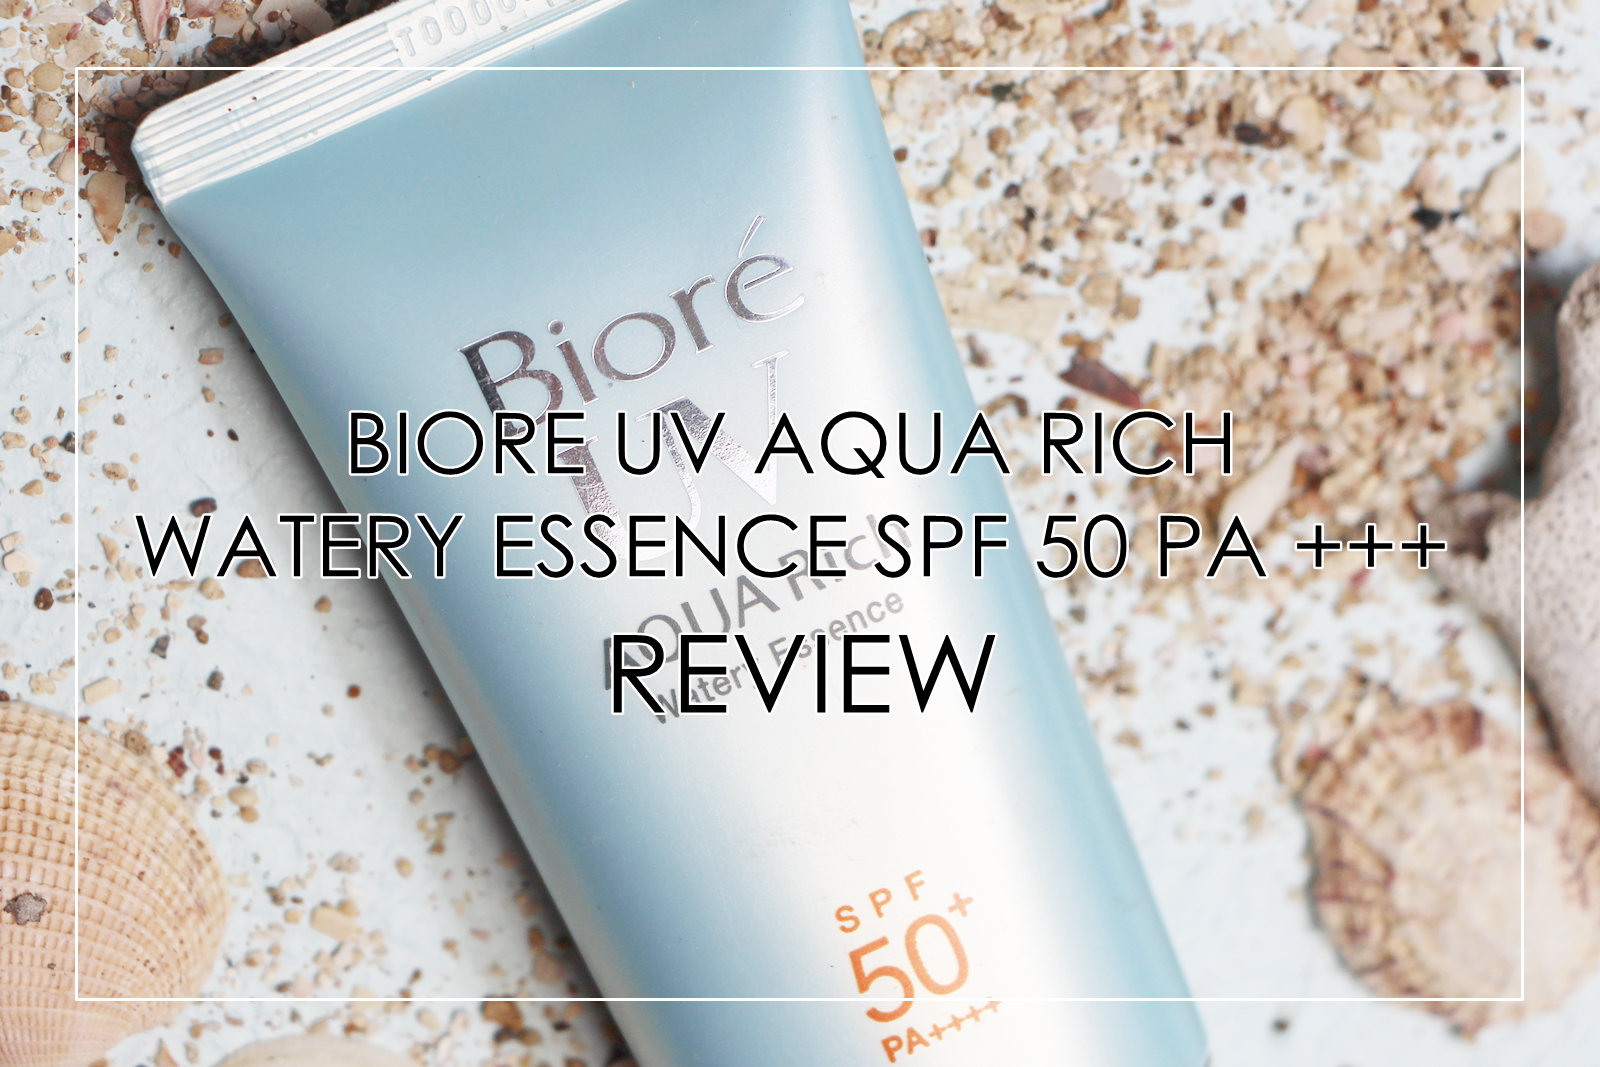 biore uv aqua rich review